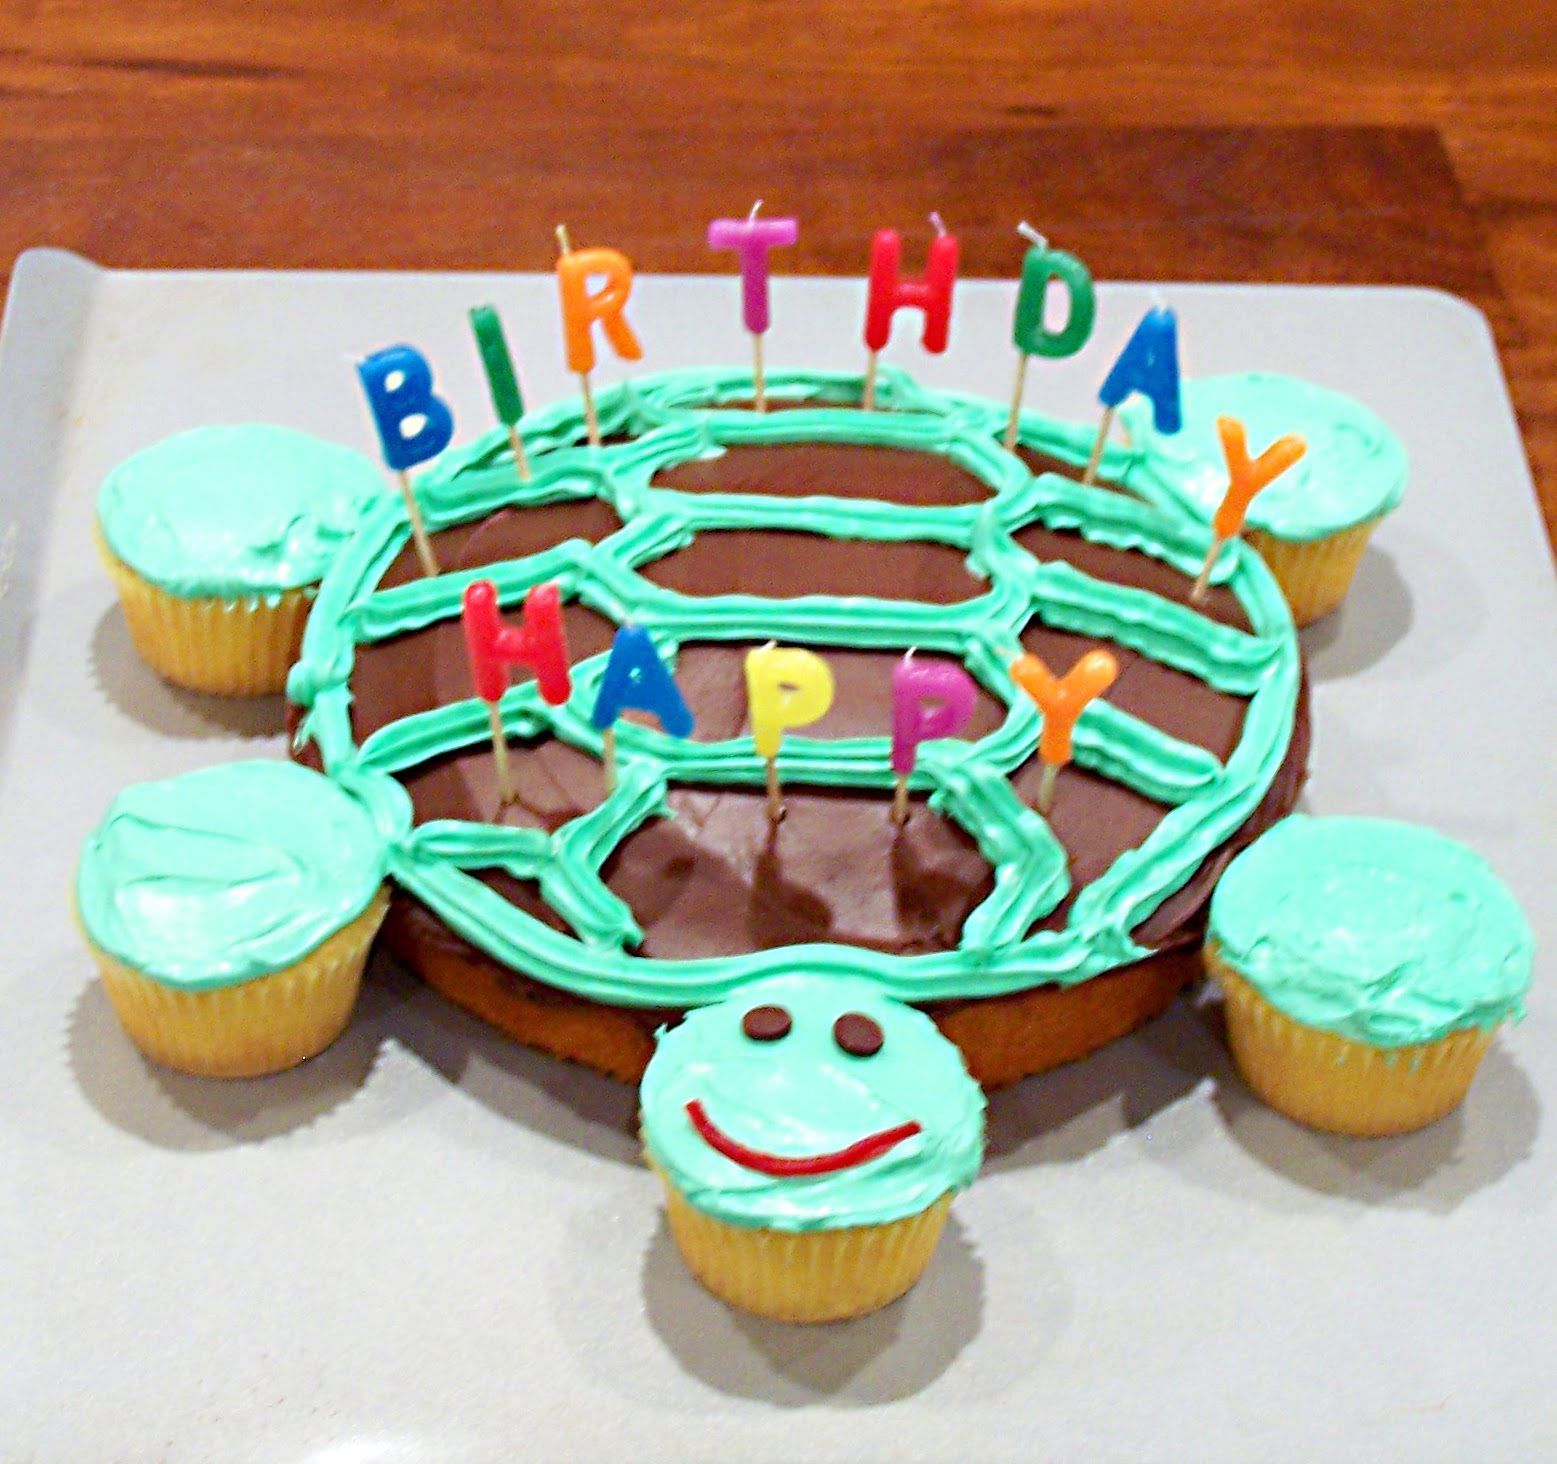 Easy Cake Decorating Ideas For Boy Birthday : all boy stuff: Easy Birthday Cakes